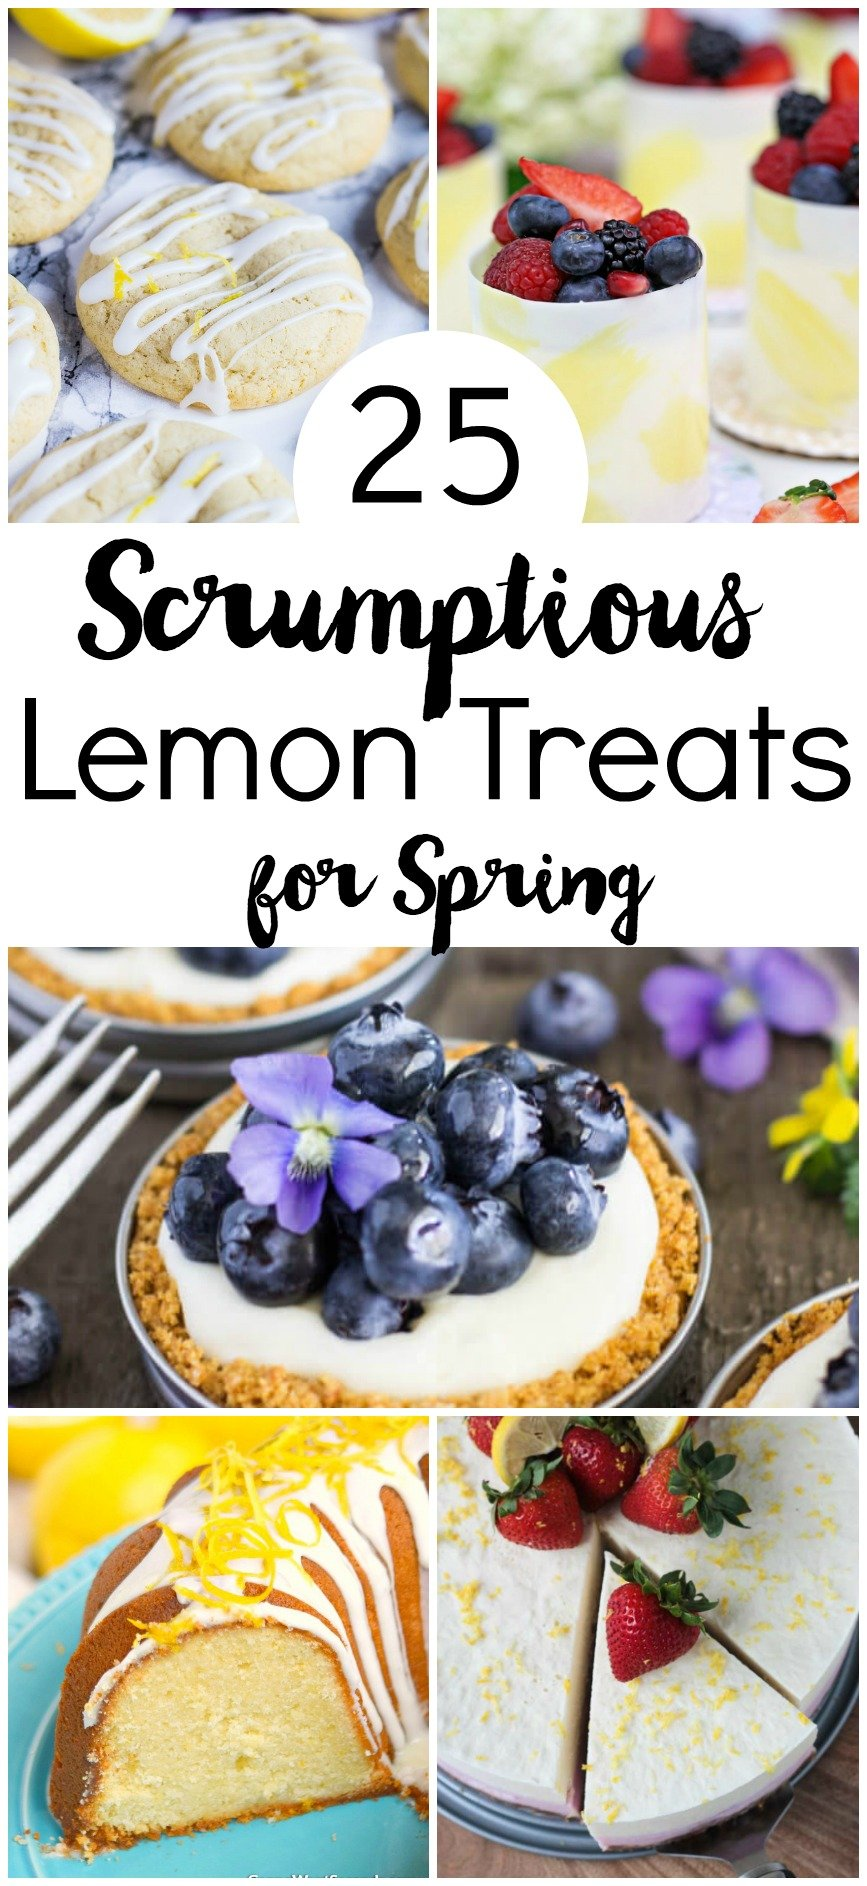 Get ready for Spring with these 25 Scrumptious Lemon Treats! Cookies, ice cream cakes, pies, cupcakes and so much more. Celebrate the season with one of these refreshing desserts!